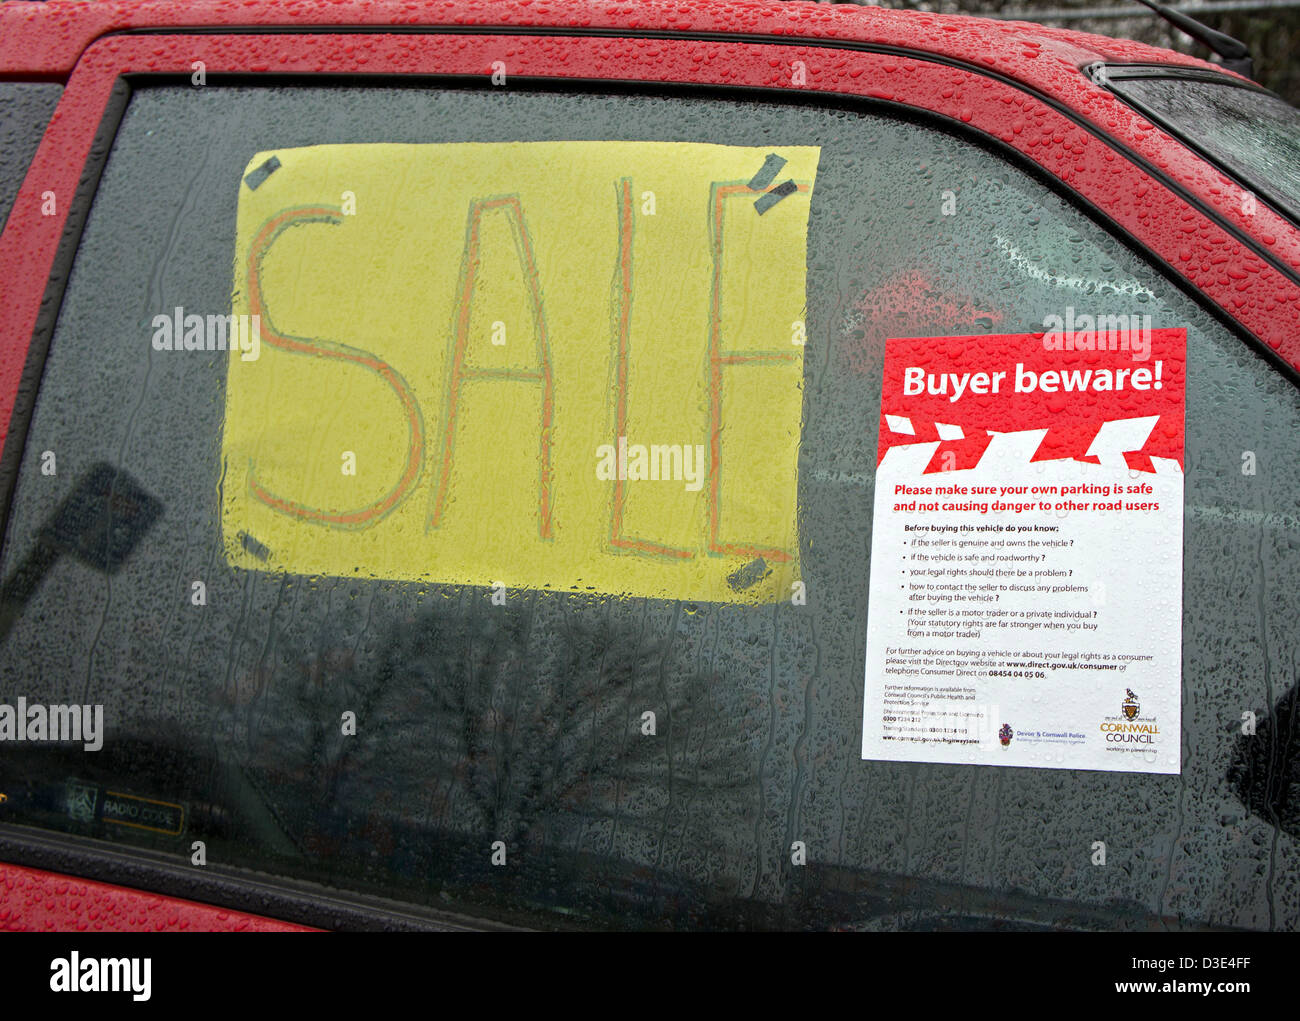 A local council ' buyer beware ' sign on a second hand car for sale by the roadside - Stock Image